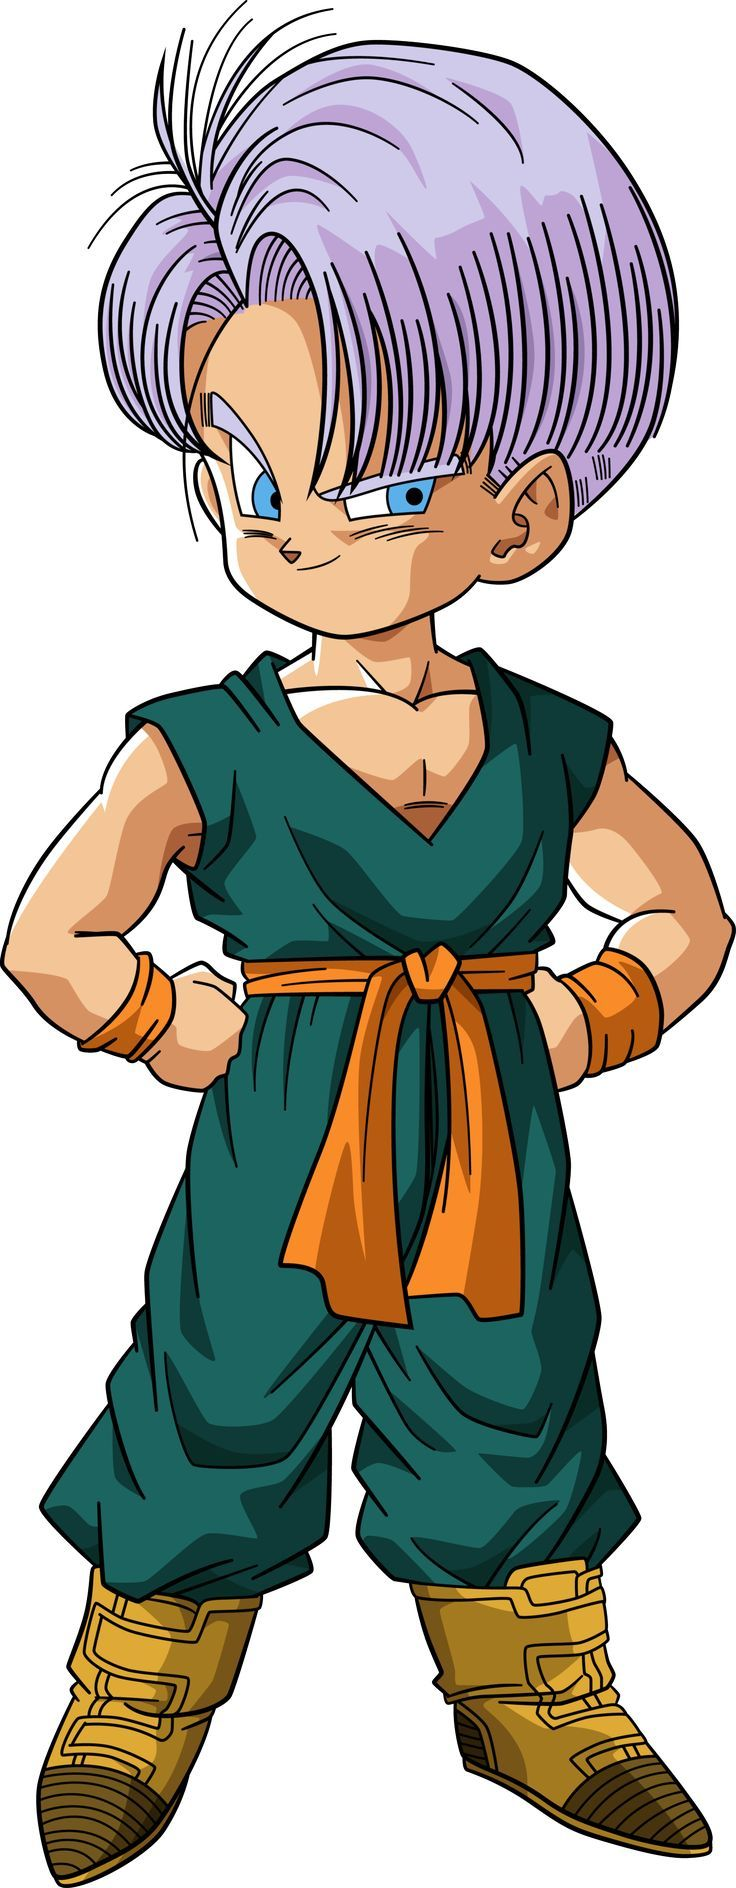 Kid Trunks By Rayzorblade189 On Deviantart Visit Now For 3d Dragon Ball Z Compression Shirts Now On Sale Dragonball Personagens De Anime Anime Dragon Ball